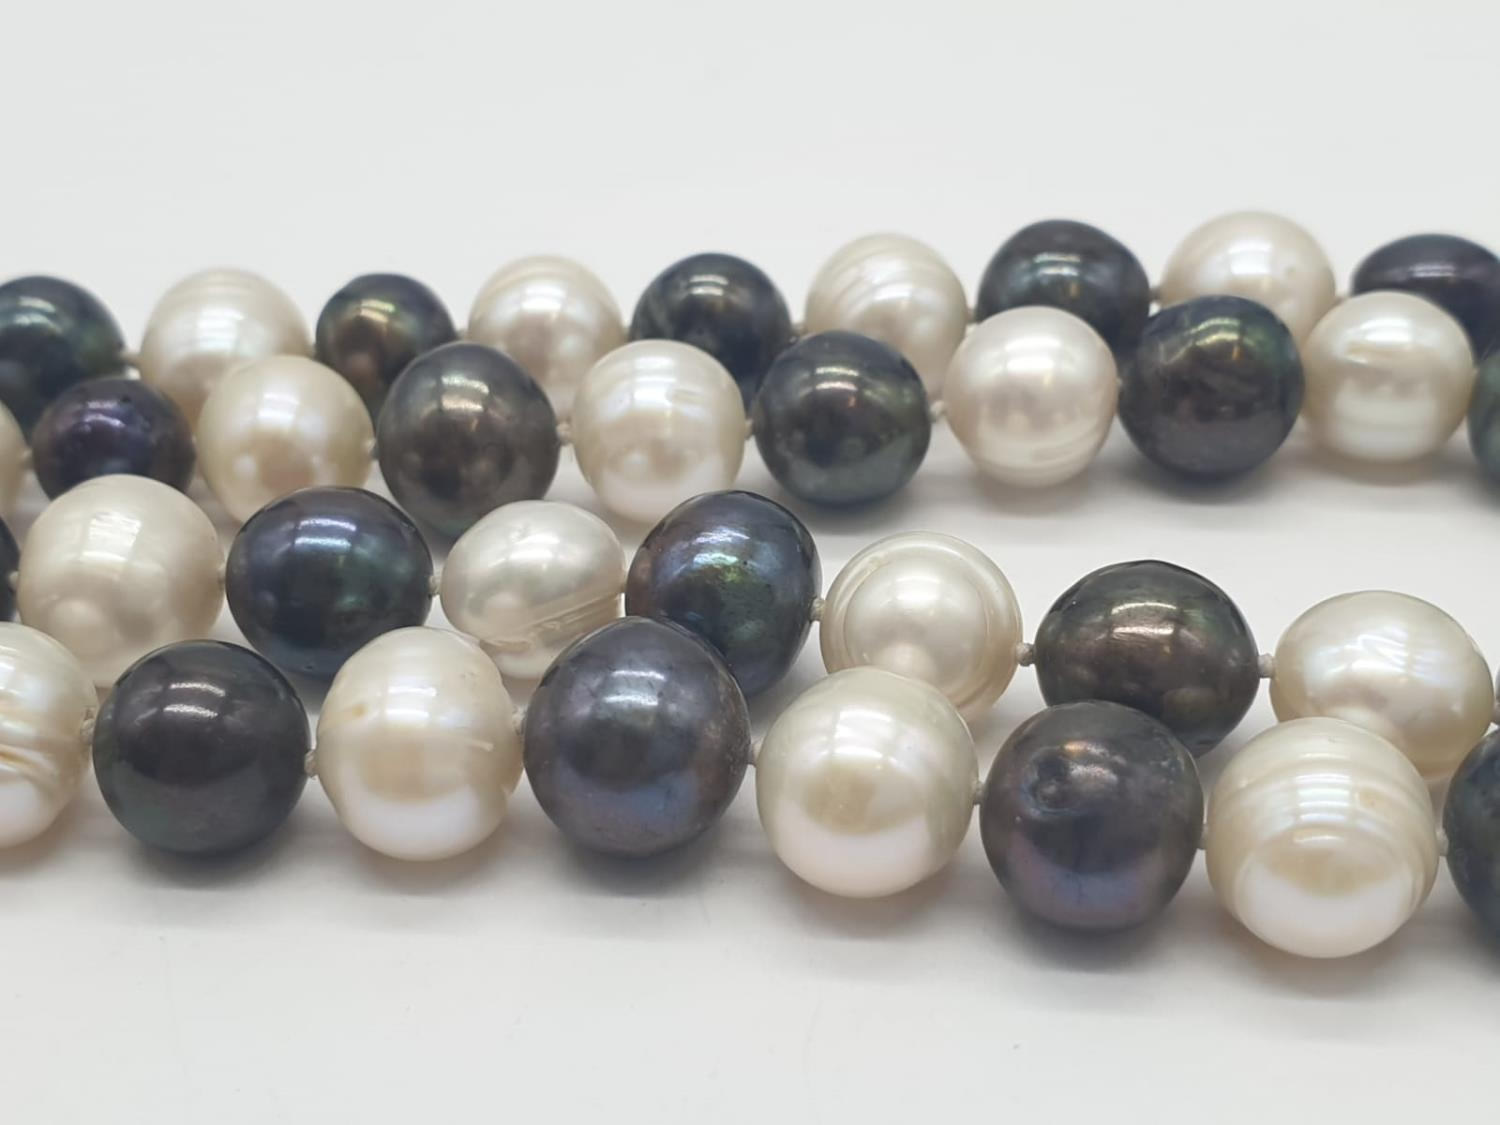 Black and White Pearl NECKLACE. 91.8g 80cm. - Image 3 of 4